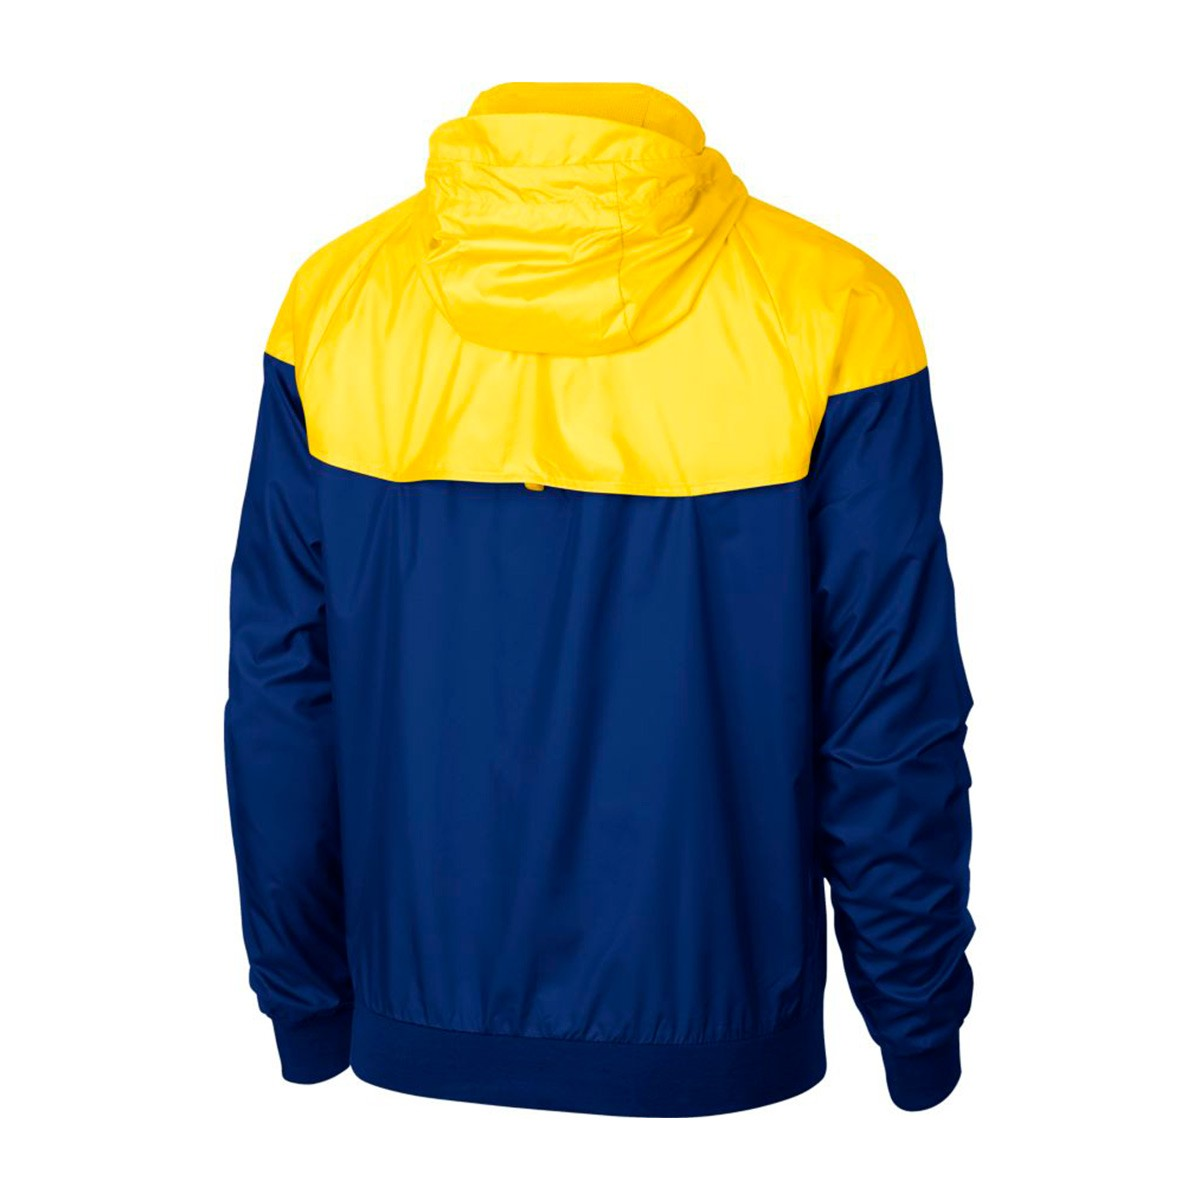 6a60df4f4 Jacket Nike Chelsea FC Windrunner 2018-2019 Rush blue-Tour yellow-Rush blue  - Football store Fútbol Emotion